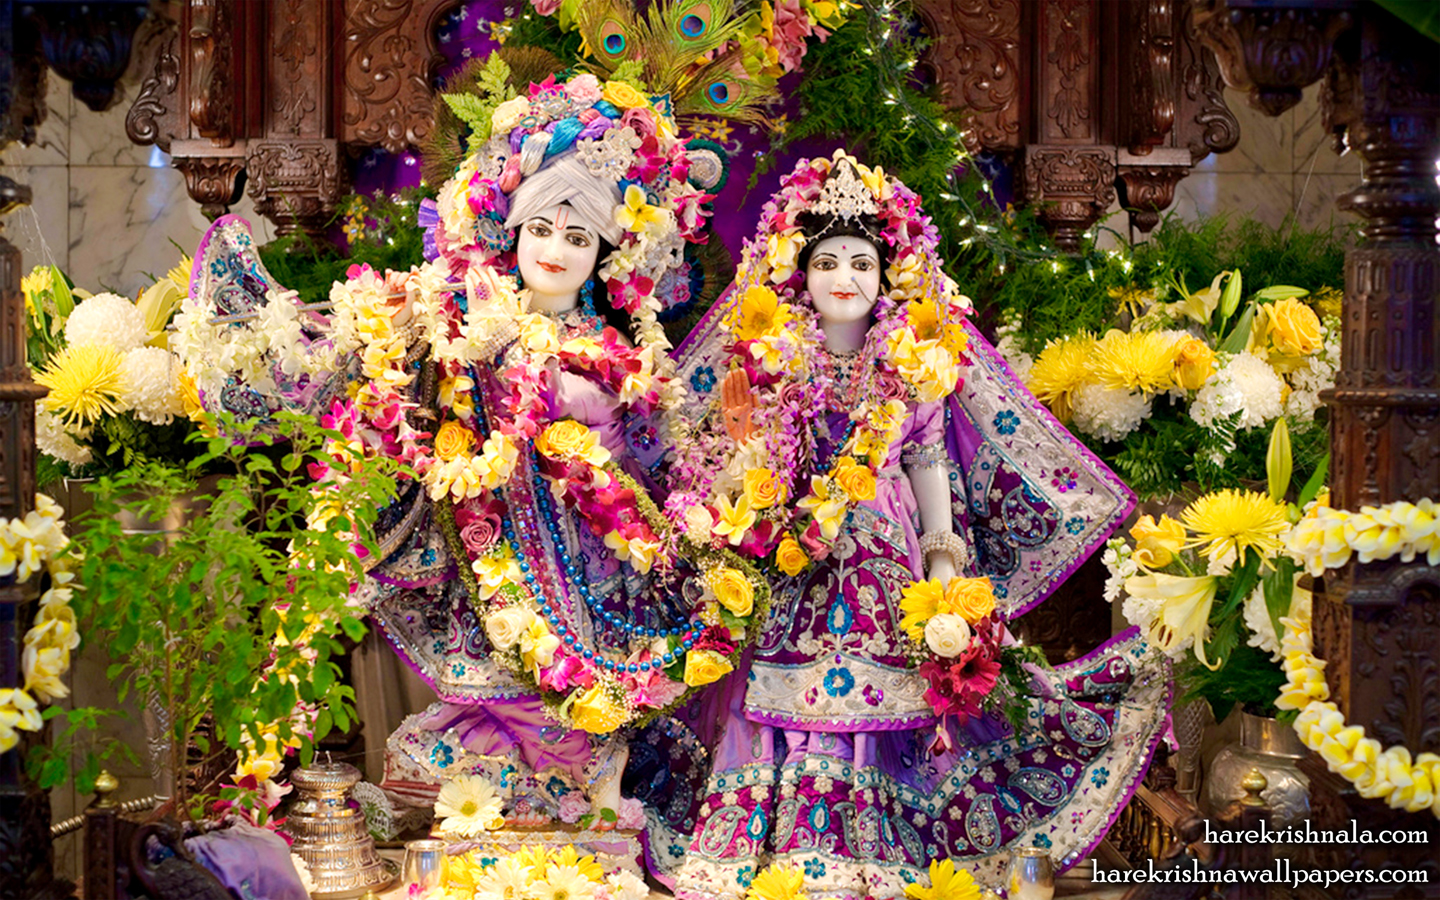 Sri Sri Rukmini Dwarkadhish Wallpaper (009) Size 1440x900 Download